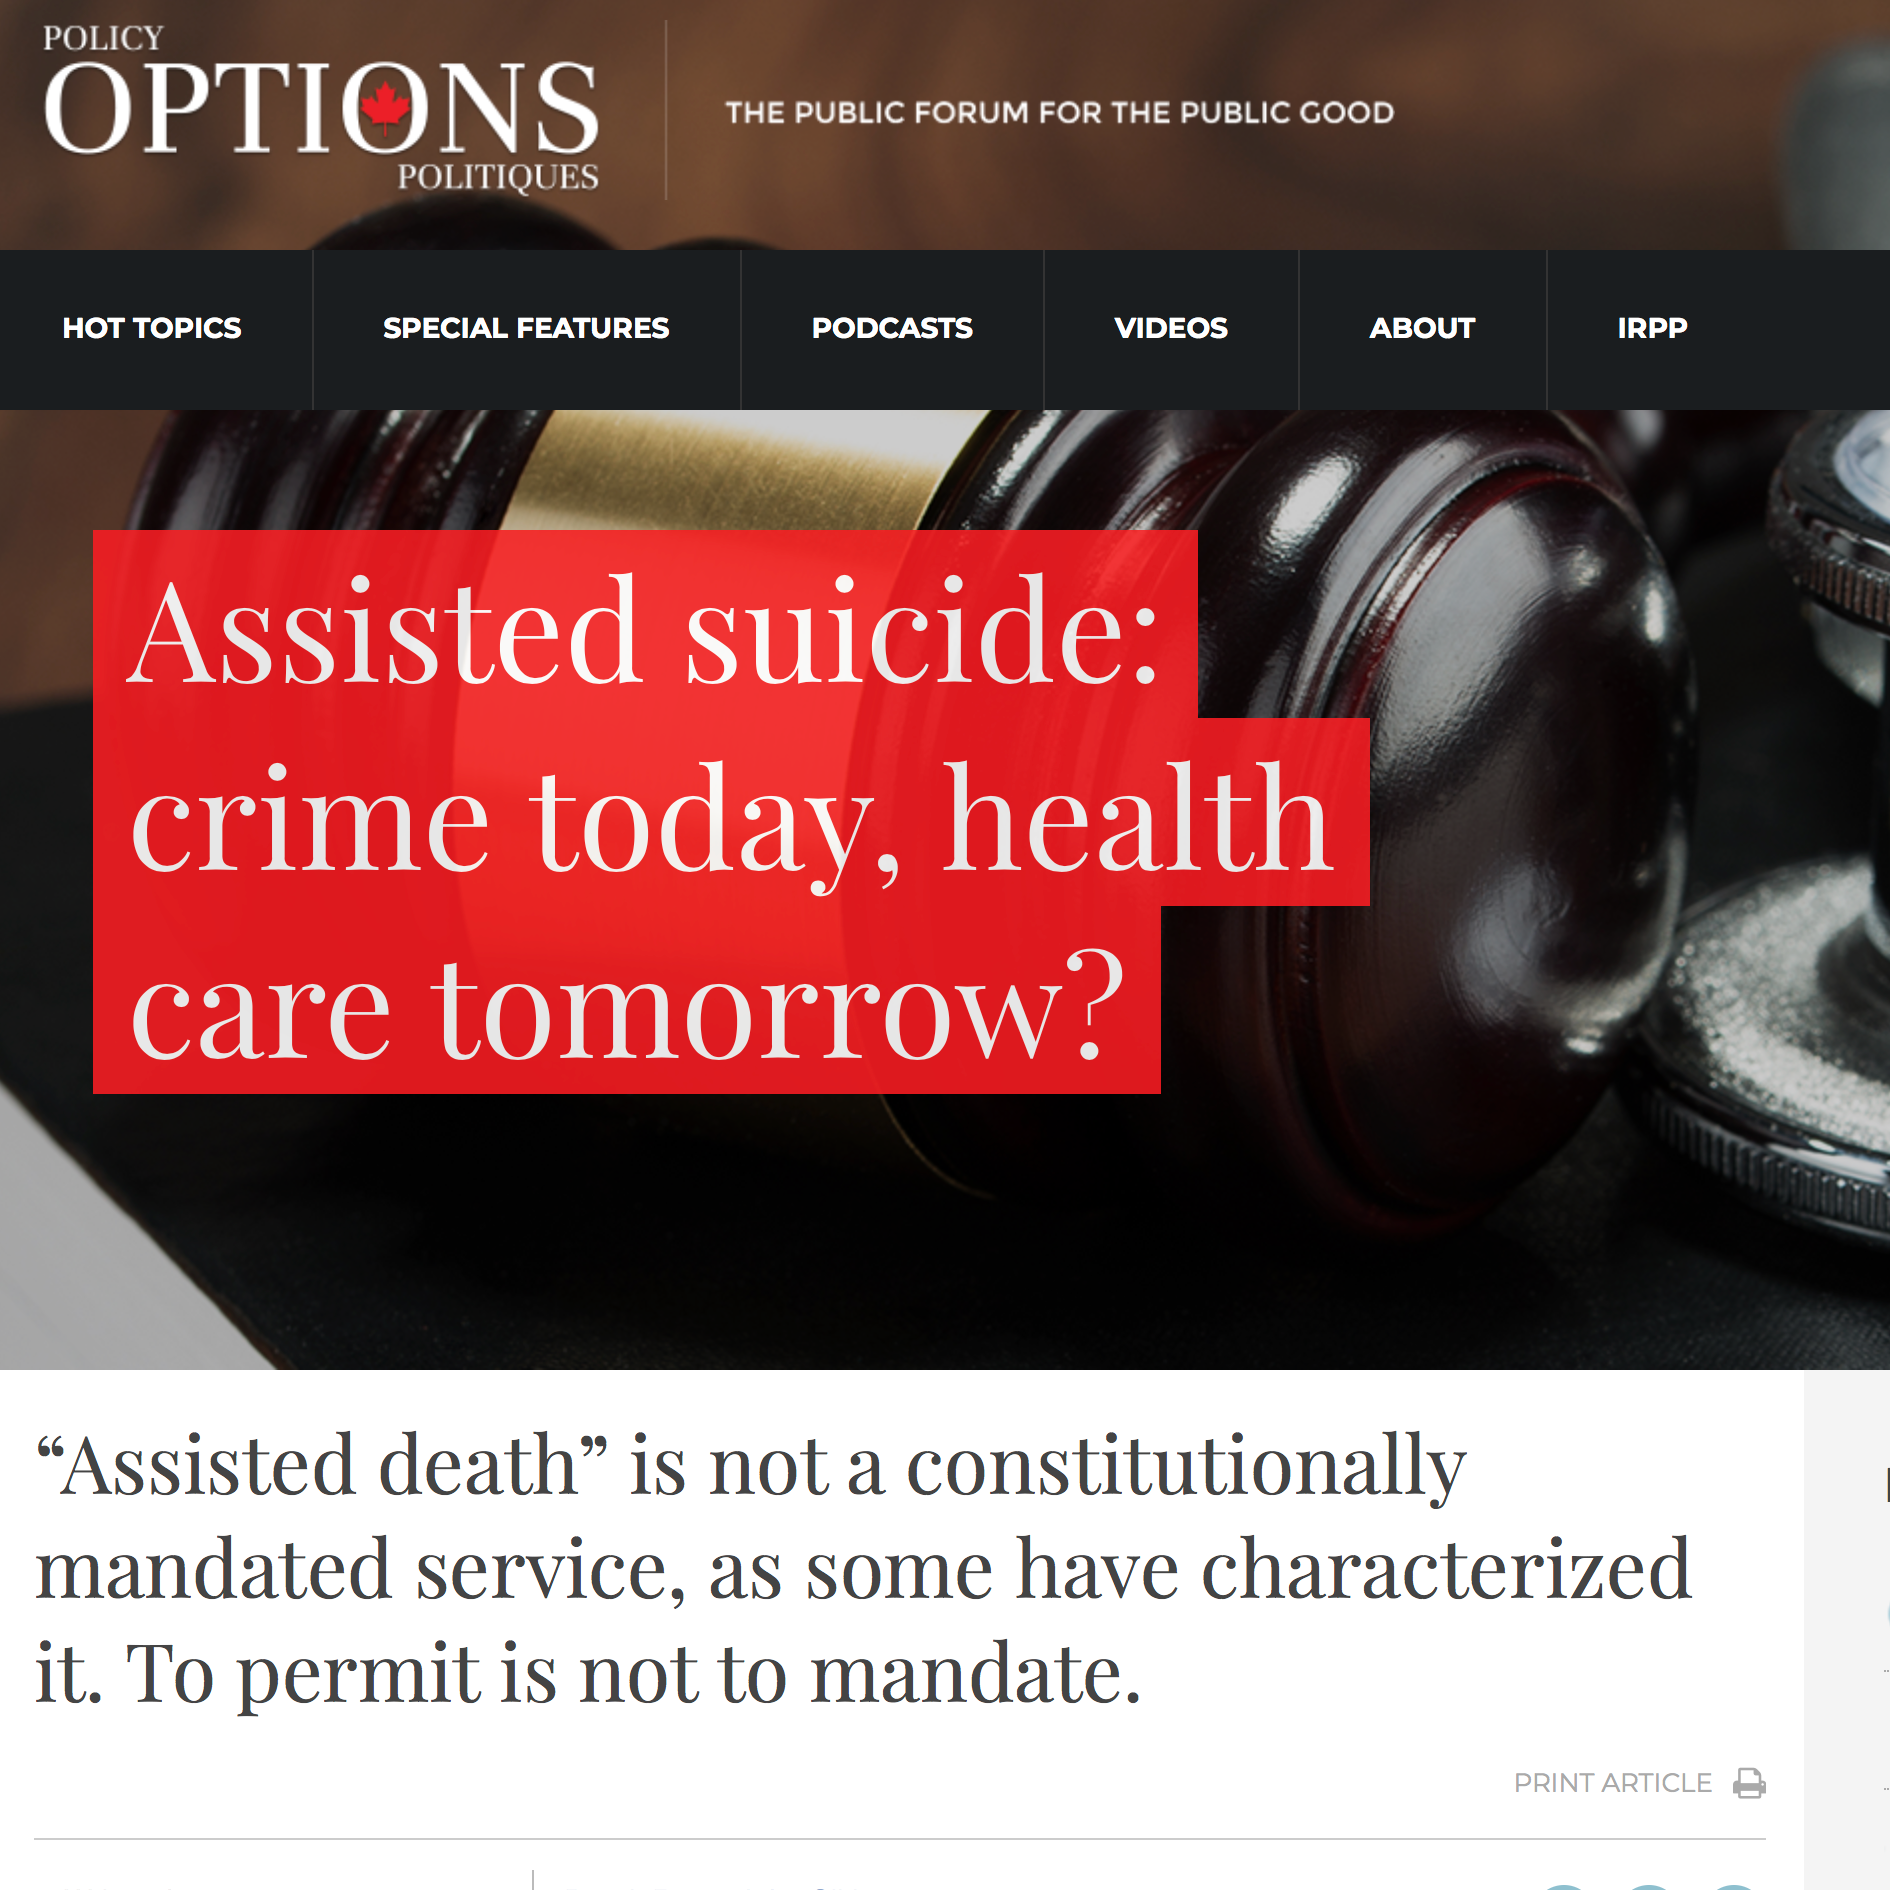 Policy Options:Assisted suicide: crime today, health care tomorrow? - Derek Ross & John Sikkema